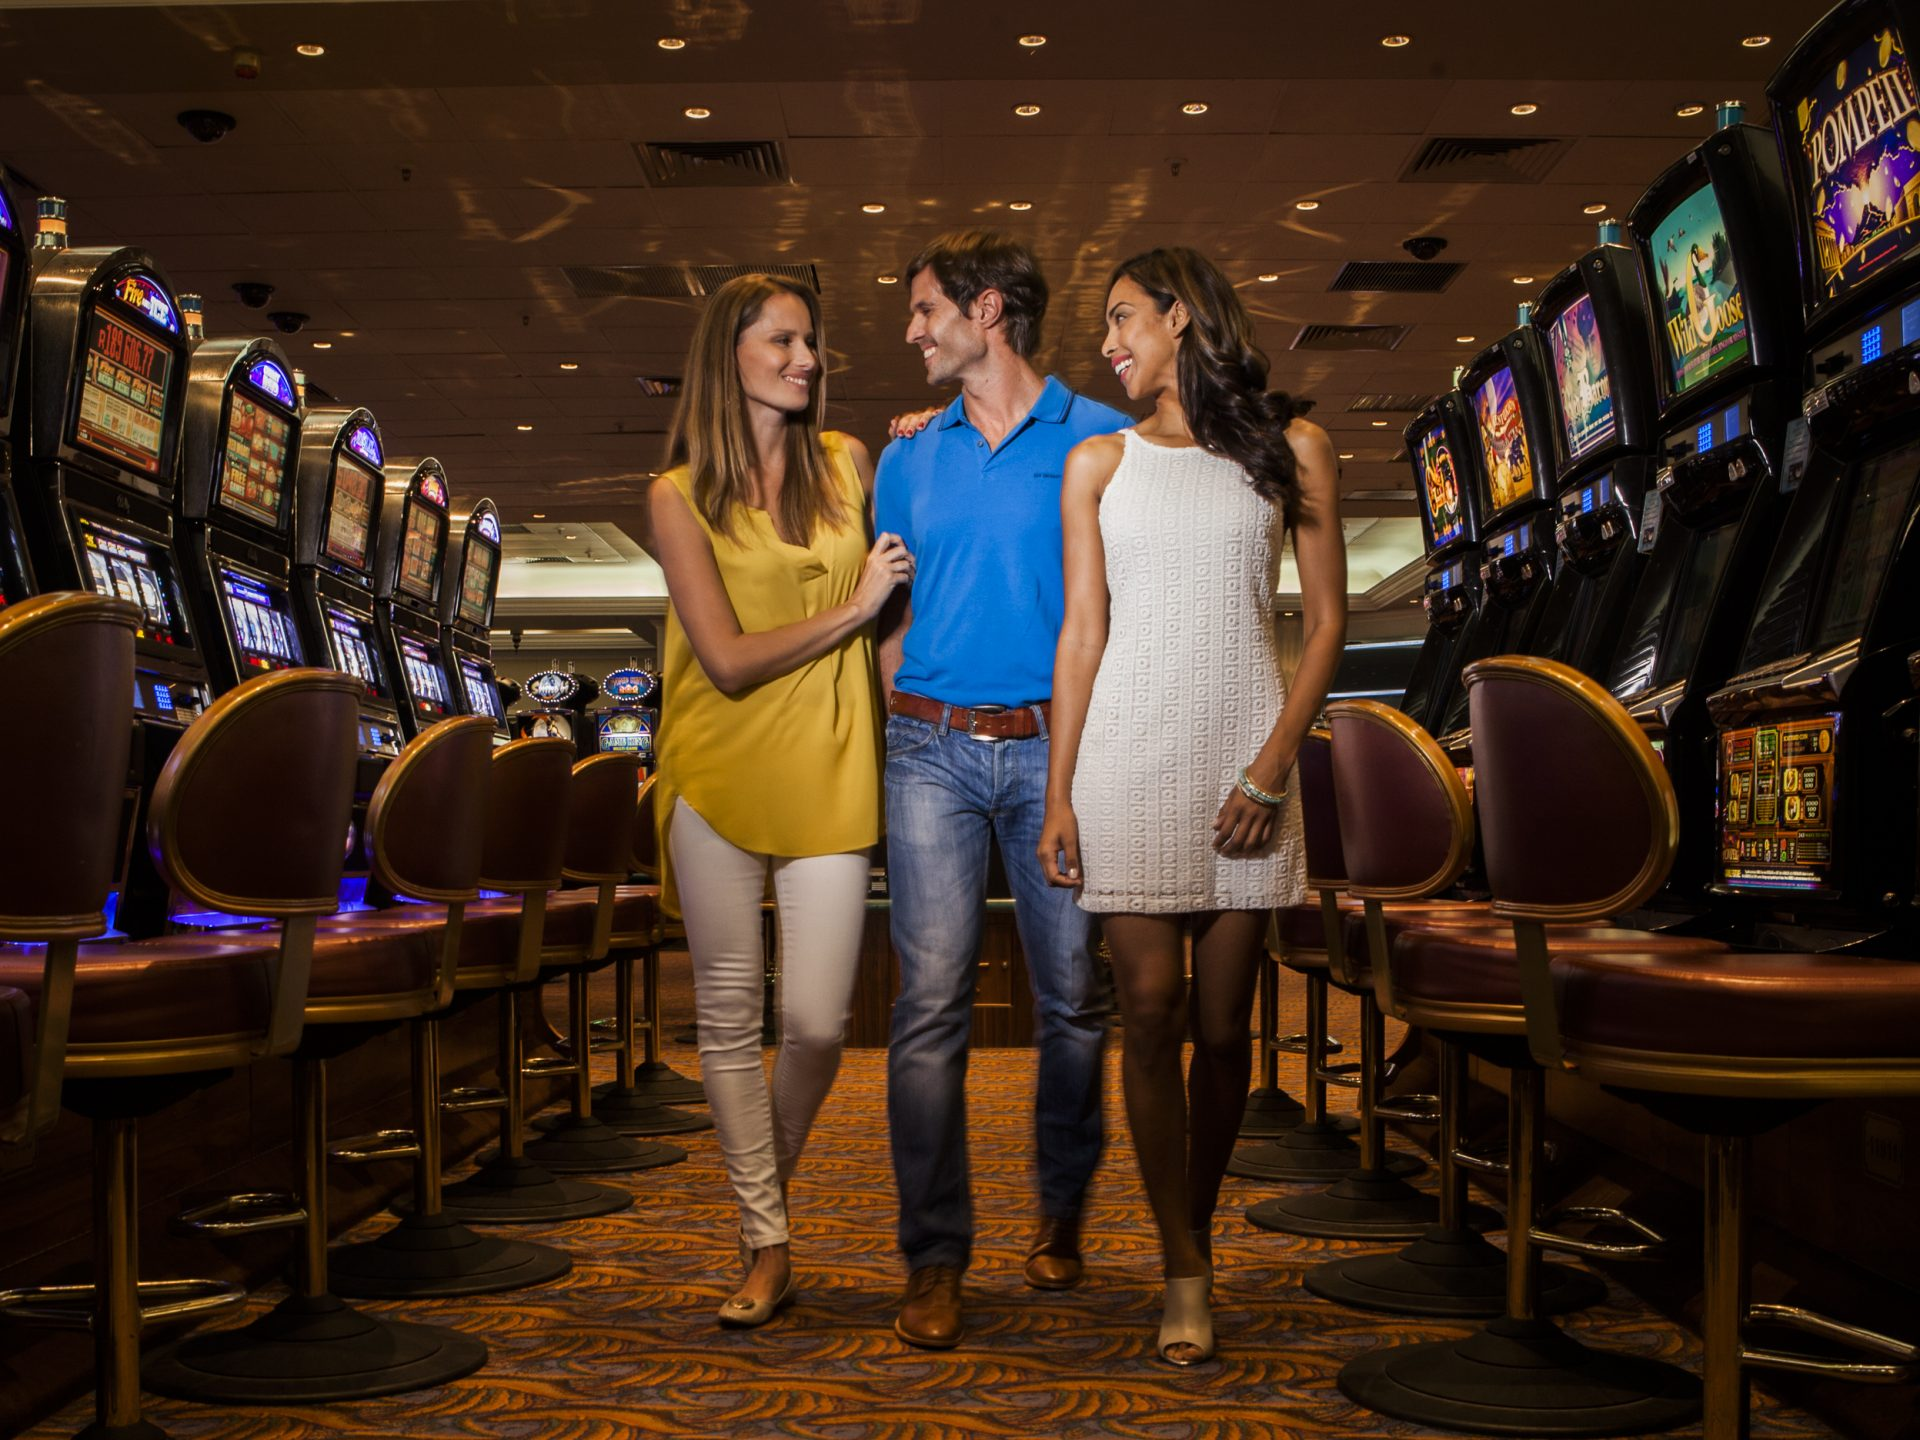 3 People Walking Past The Slot Machines